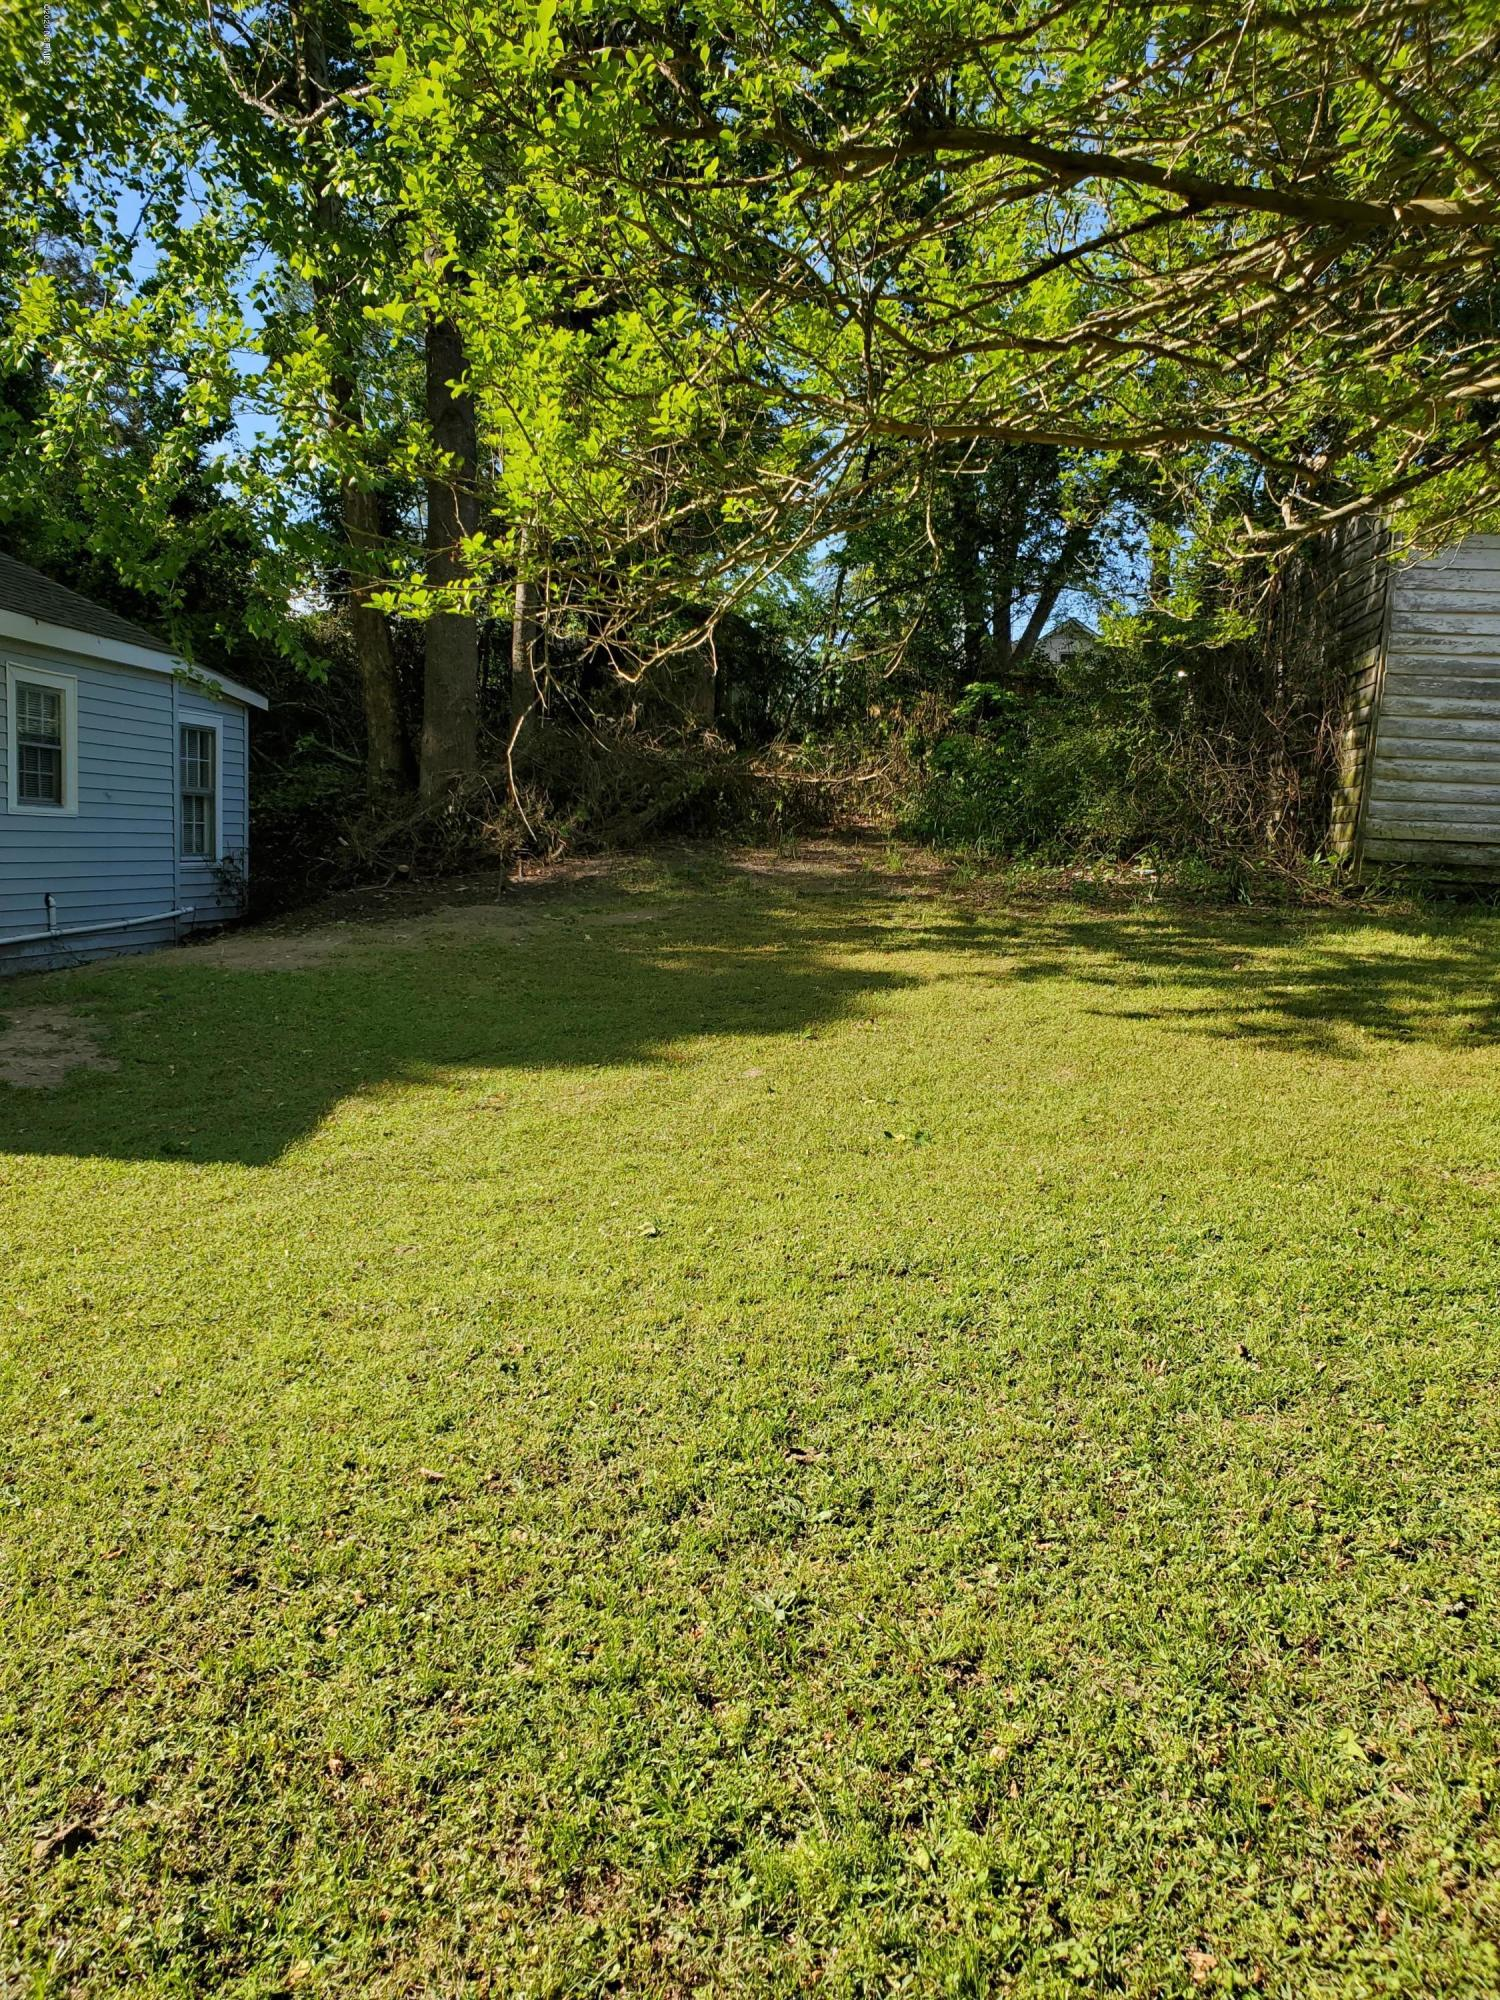 305 Mulberry Street, Williamston, North Carolina 27892, 2 Bedrooms Bedrooms, 6 Rooms Rooms,1 BathroomBathrooms,Single family residence,For sale,Mulberry,100216287